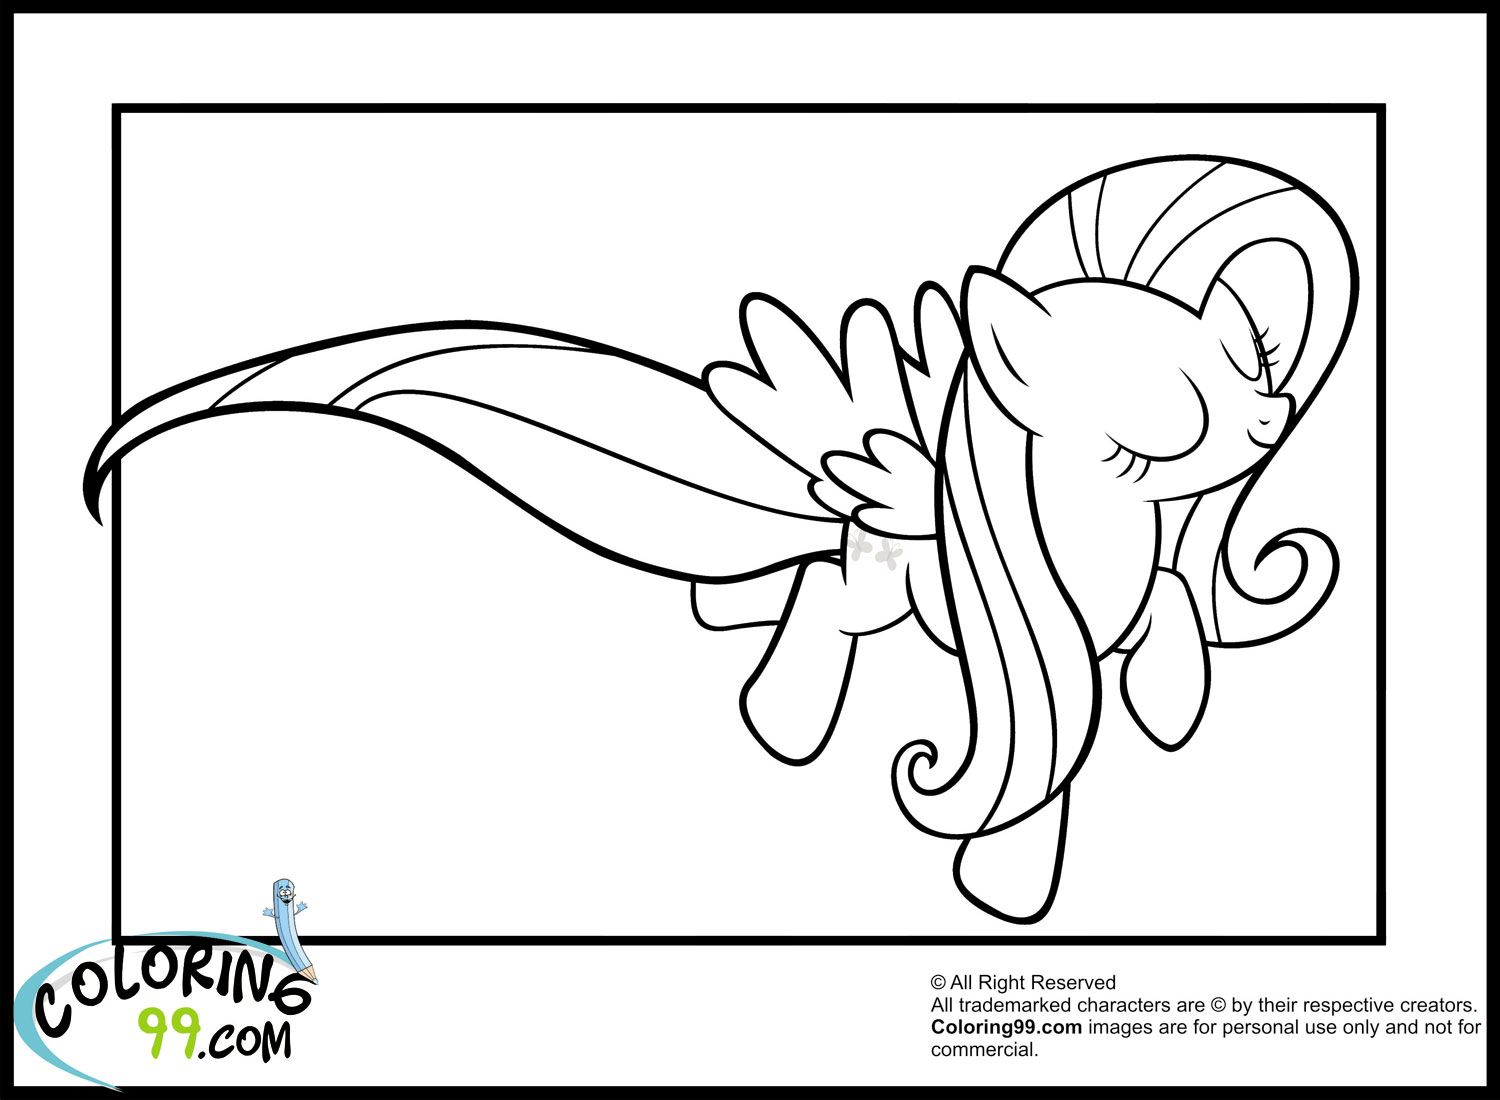 flying-fluttershy-coloring-pages.jpg (1500×1100) | Coloring 4 Kids ...